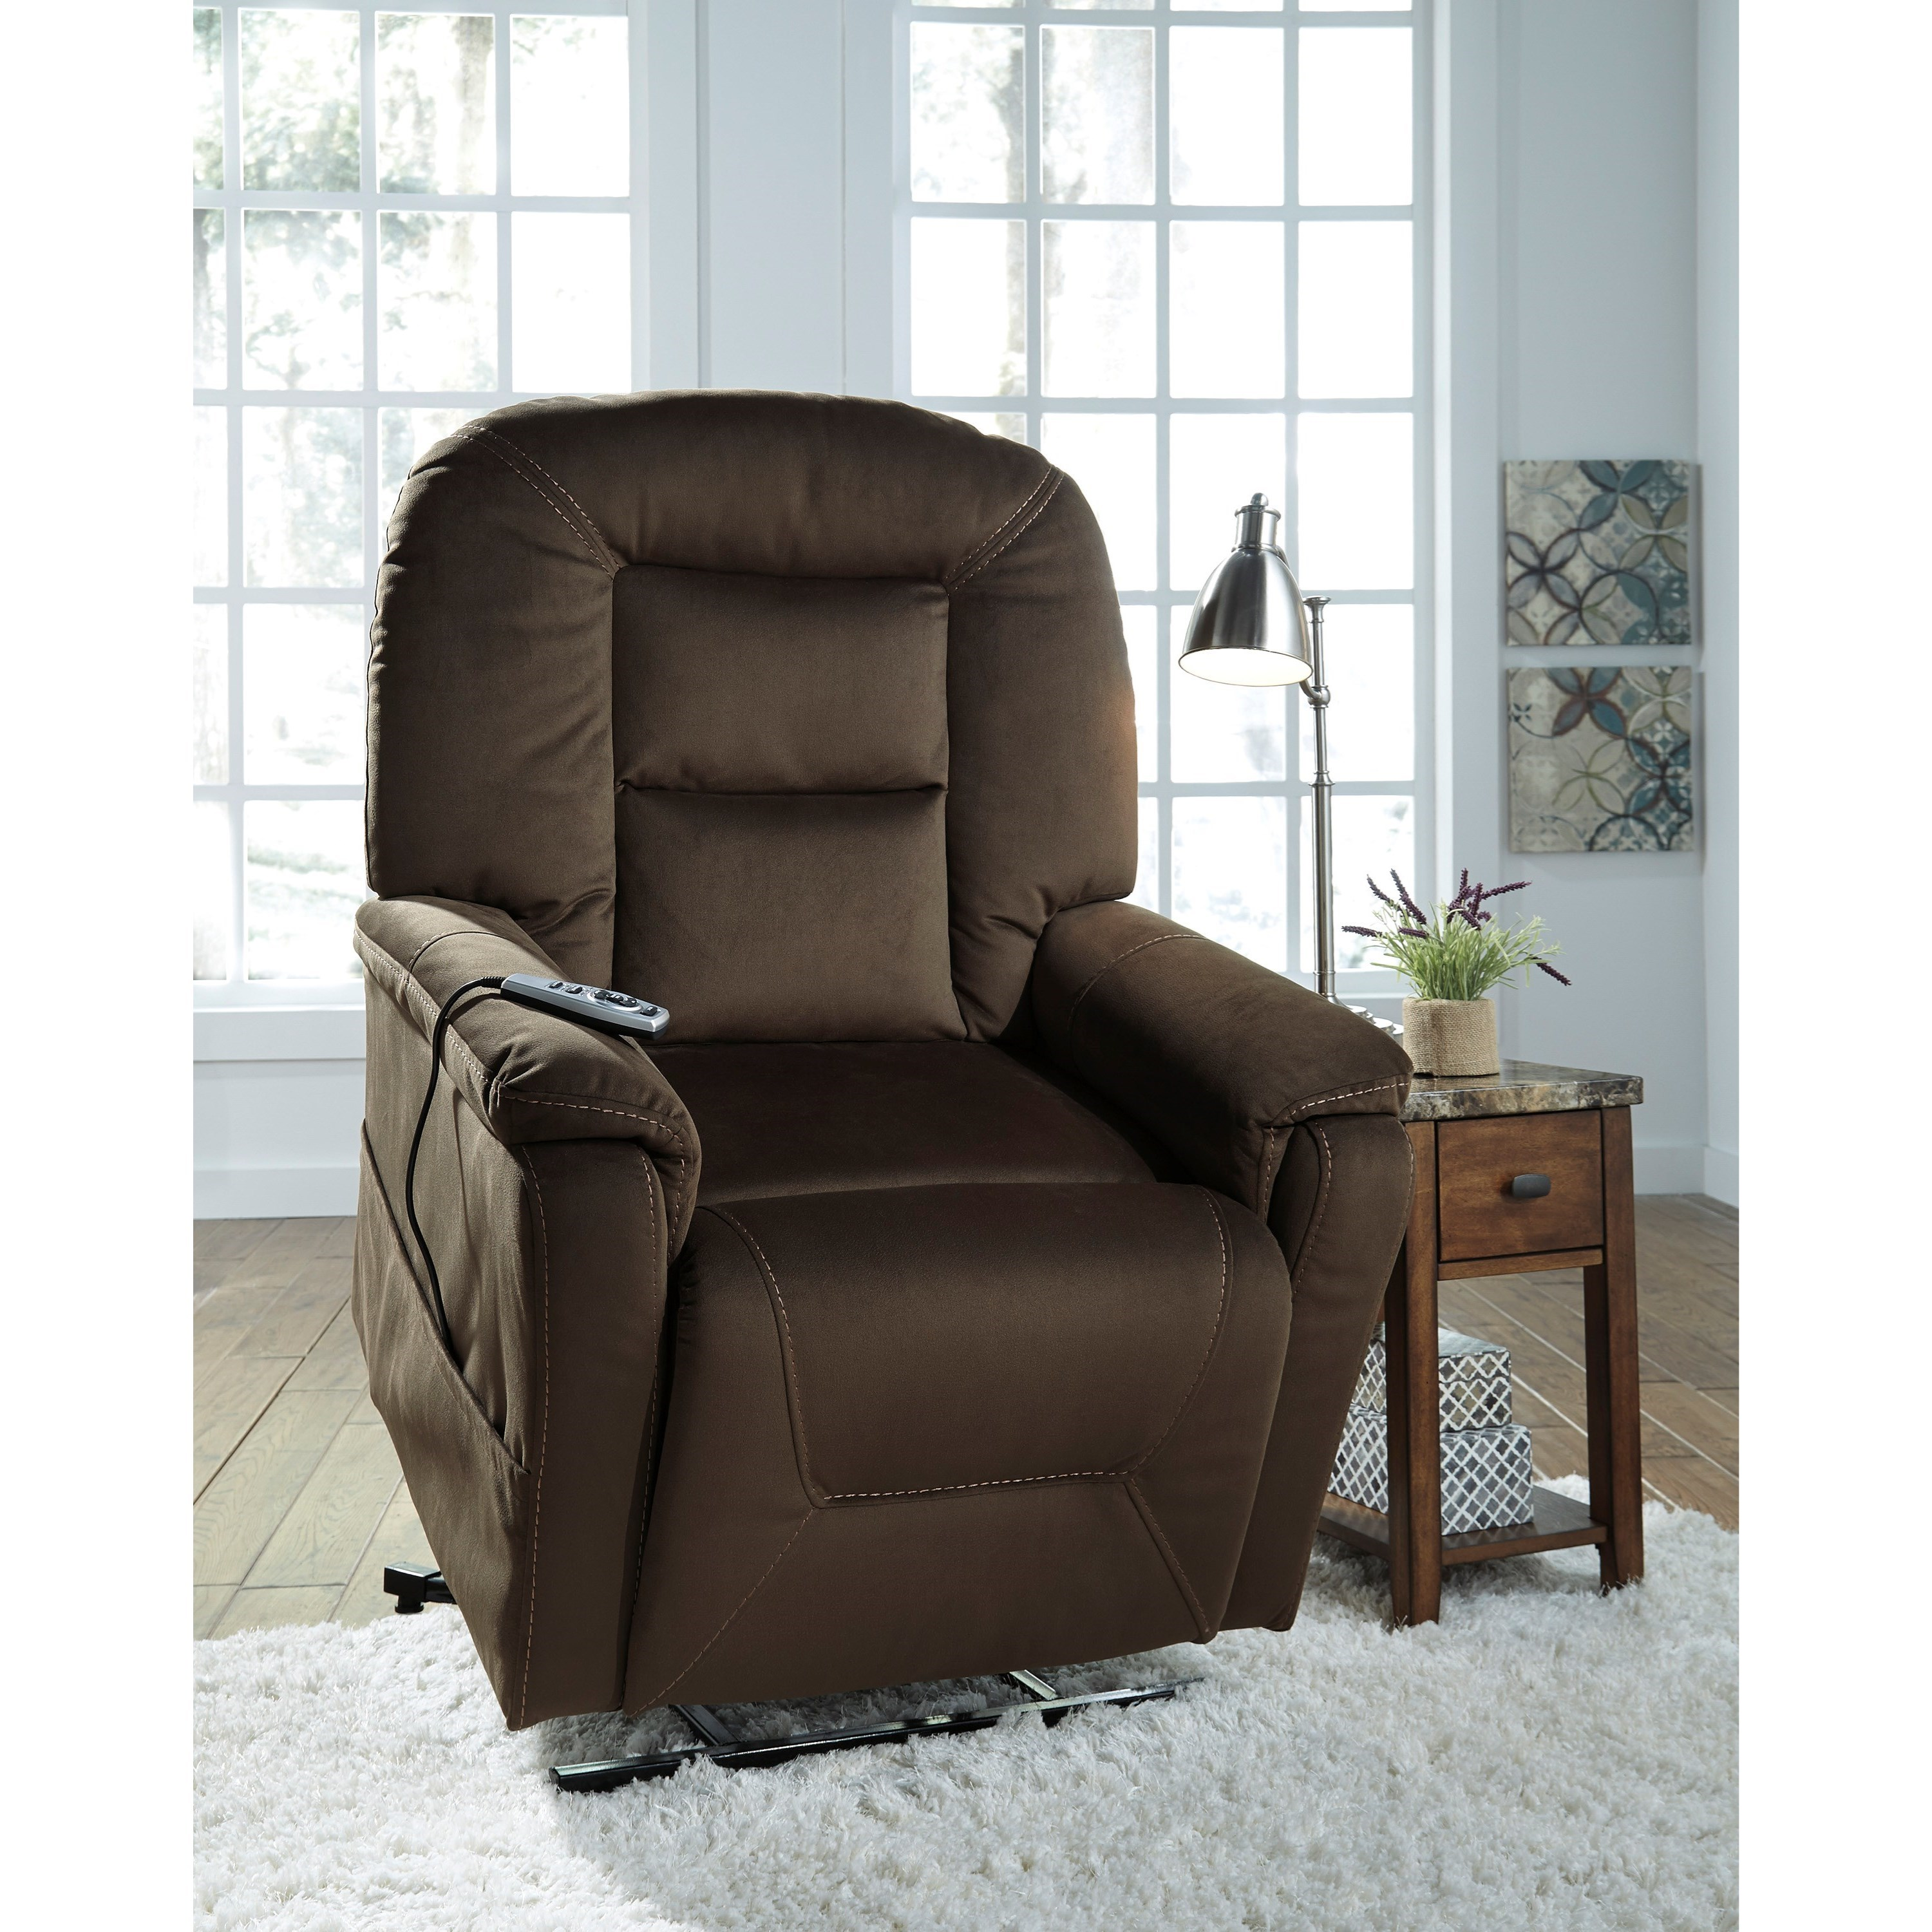 Del Sol As Samir 2080112 Power Lift Recliner With Massage